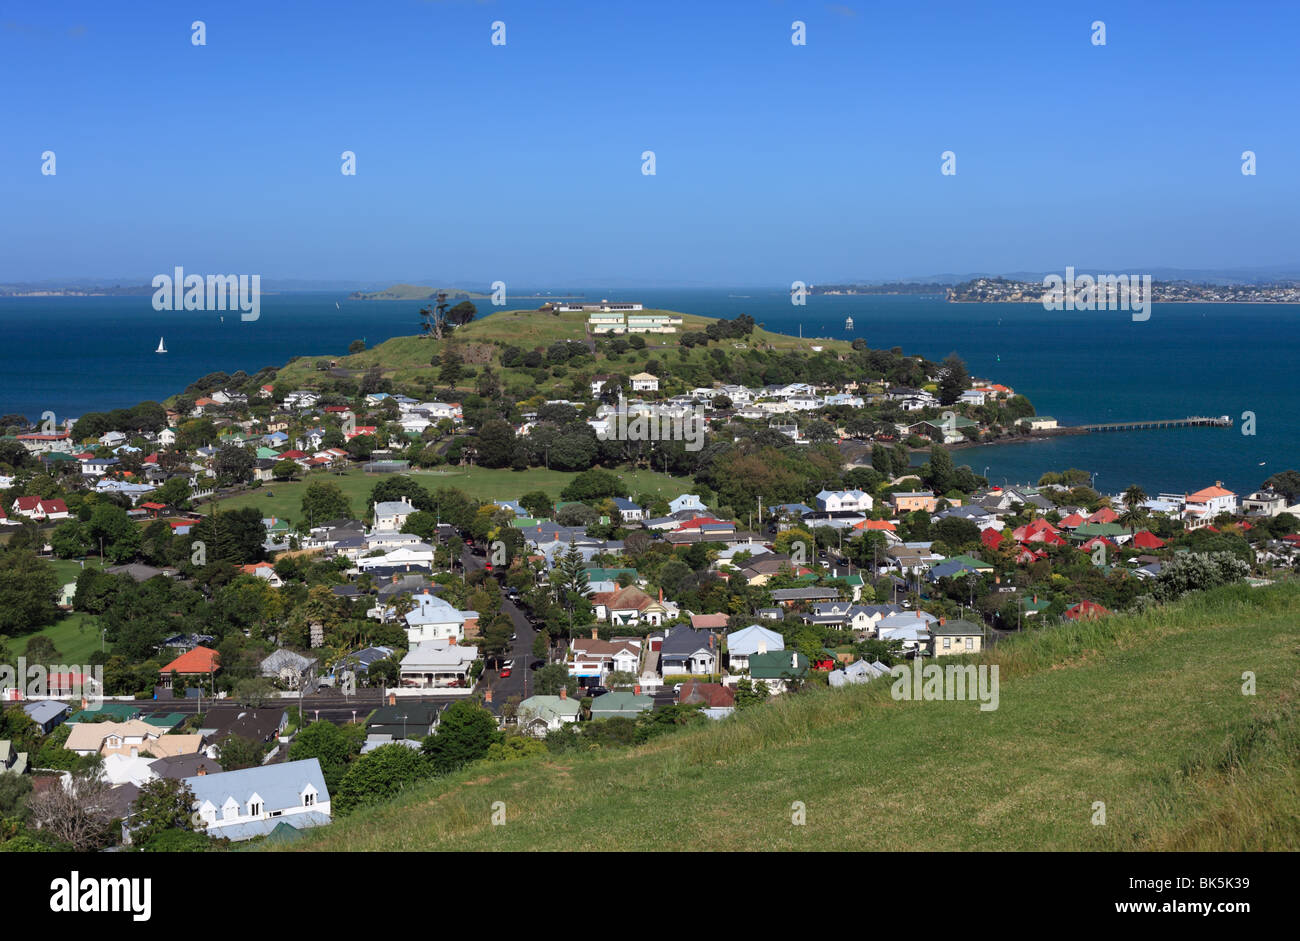 The Hauraki Gulf from Mount Victoria in Devonport, Auckland. - Stock Image